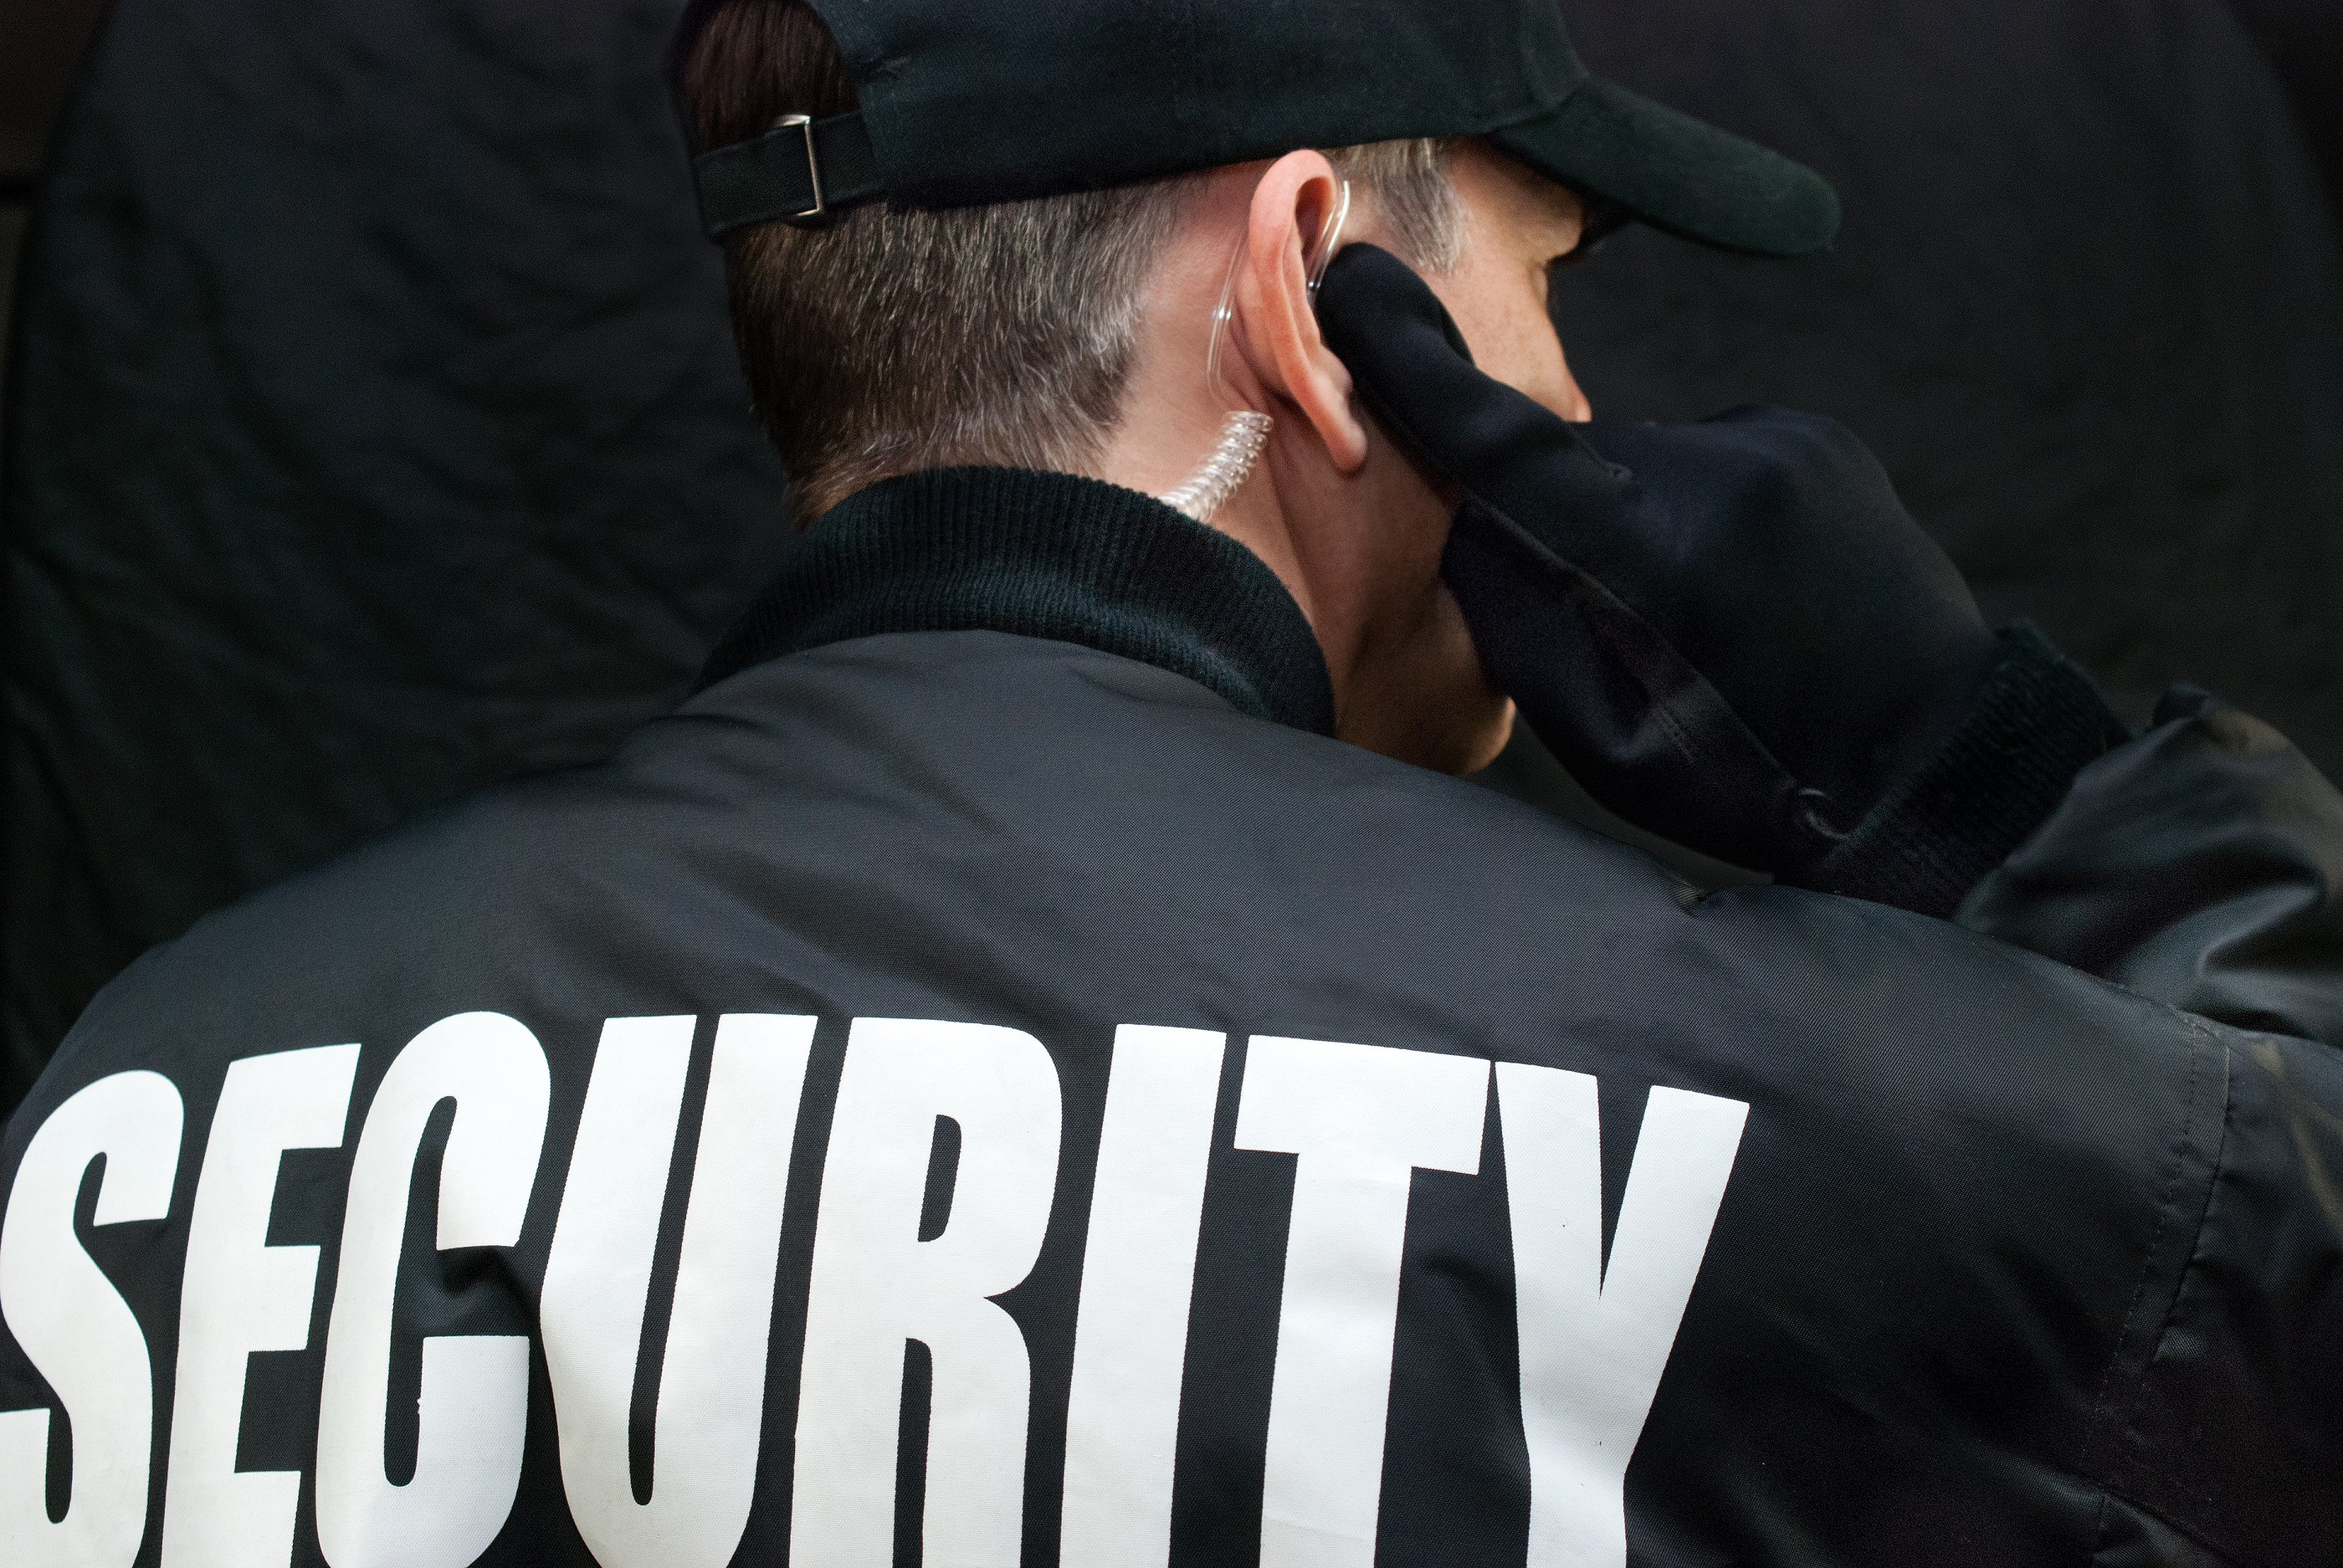 bigstock-Security-Guard-Listens-To-Earp-59468336